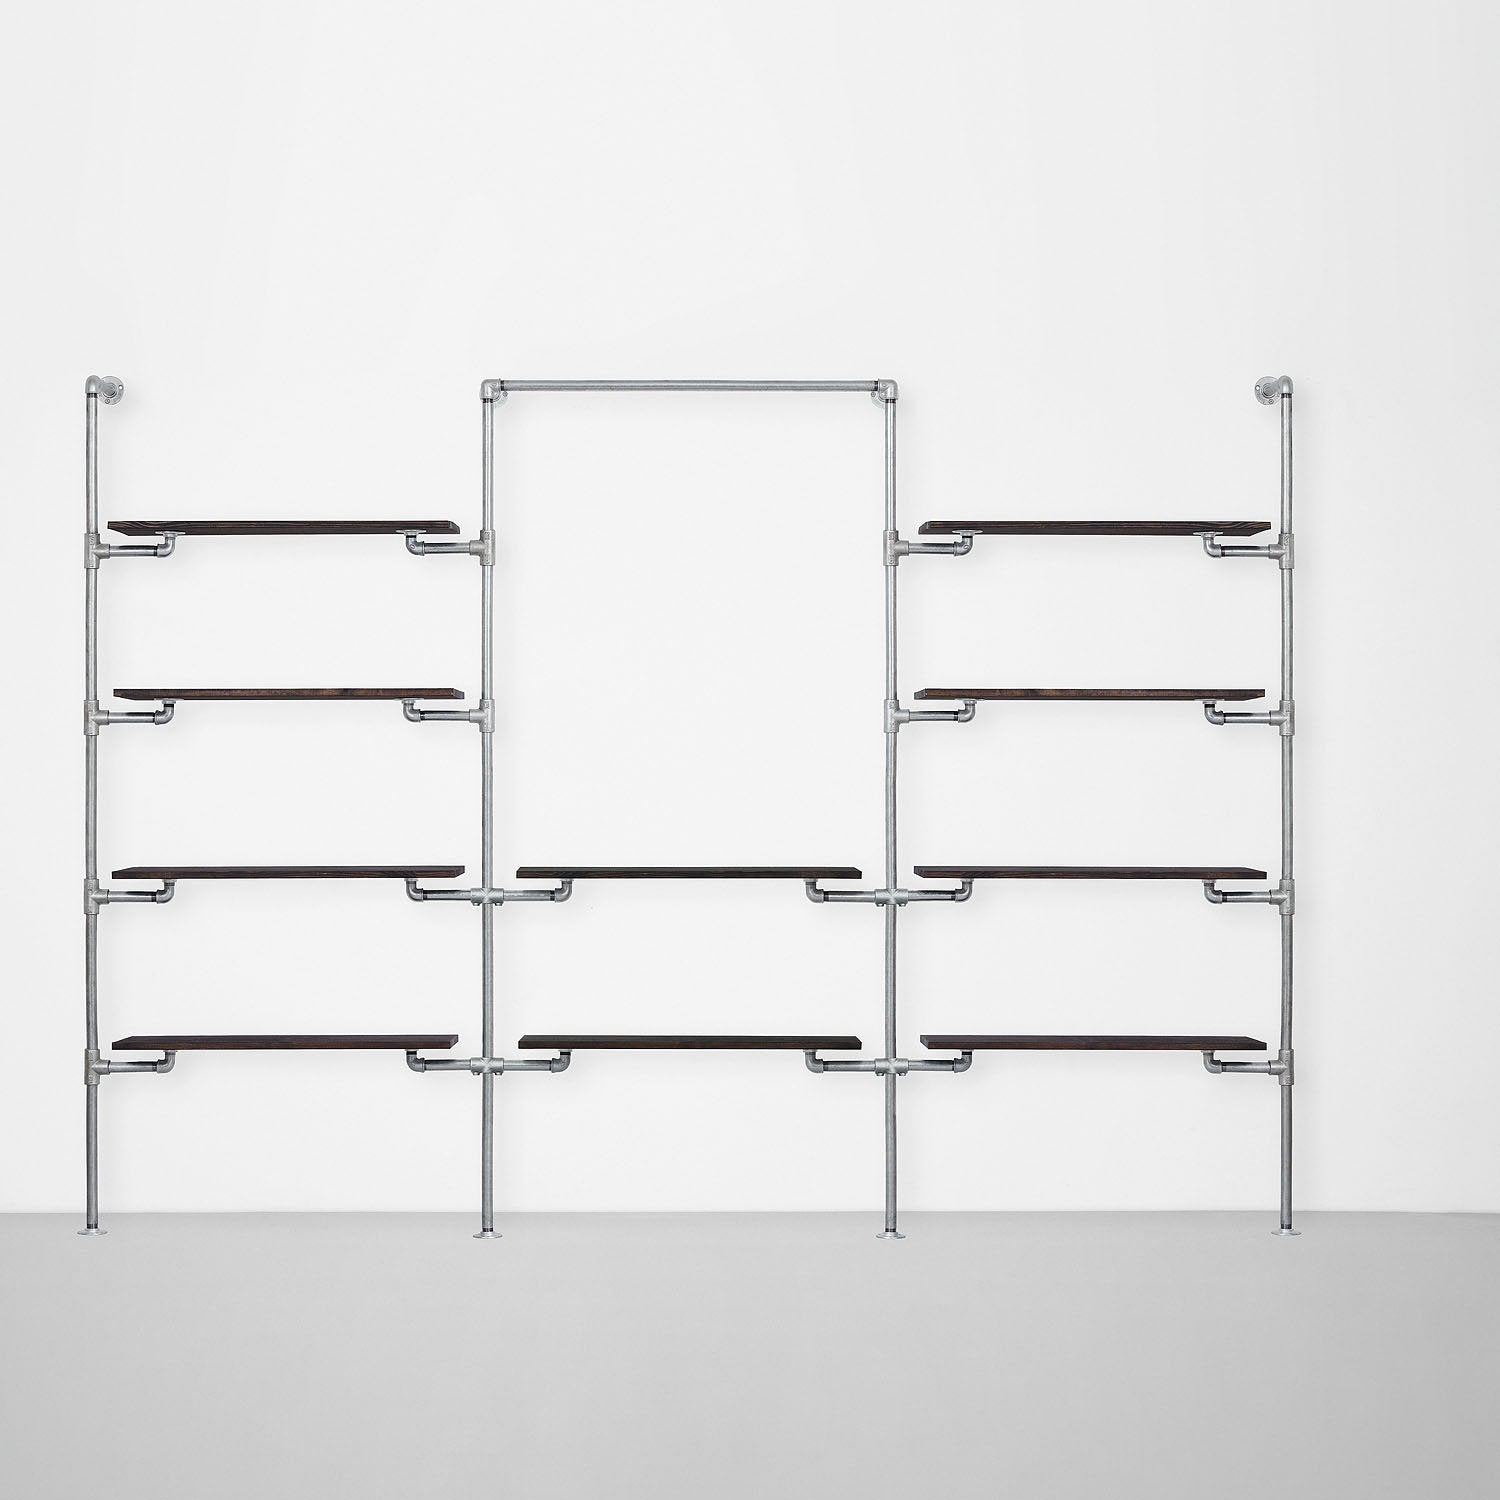 The Walk-In 3 row wardrobe system - (4 shelves / 1 rail + 2 shelves / 4 shelves)